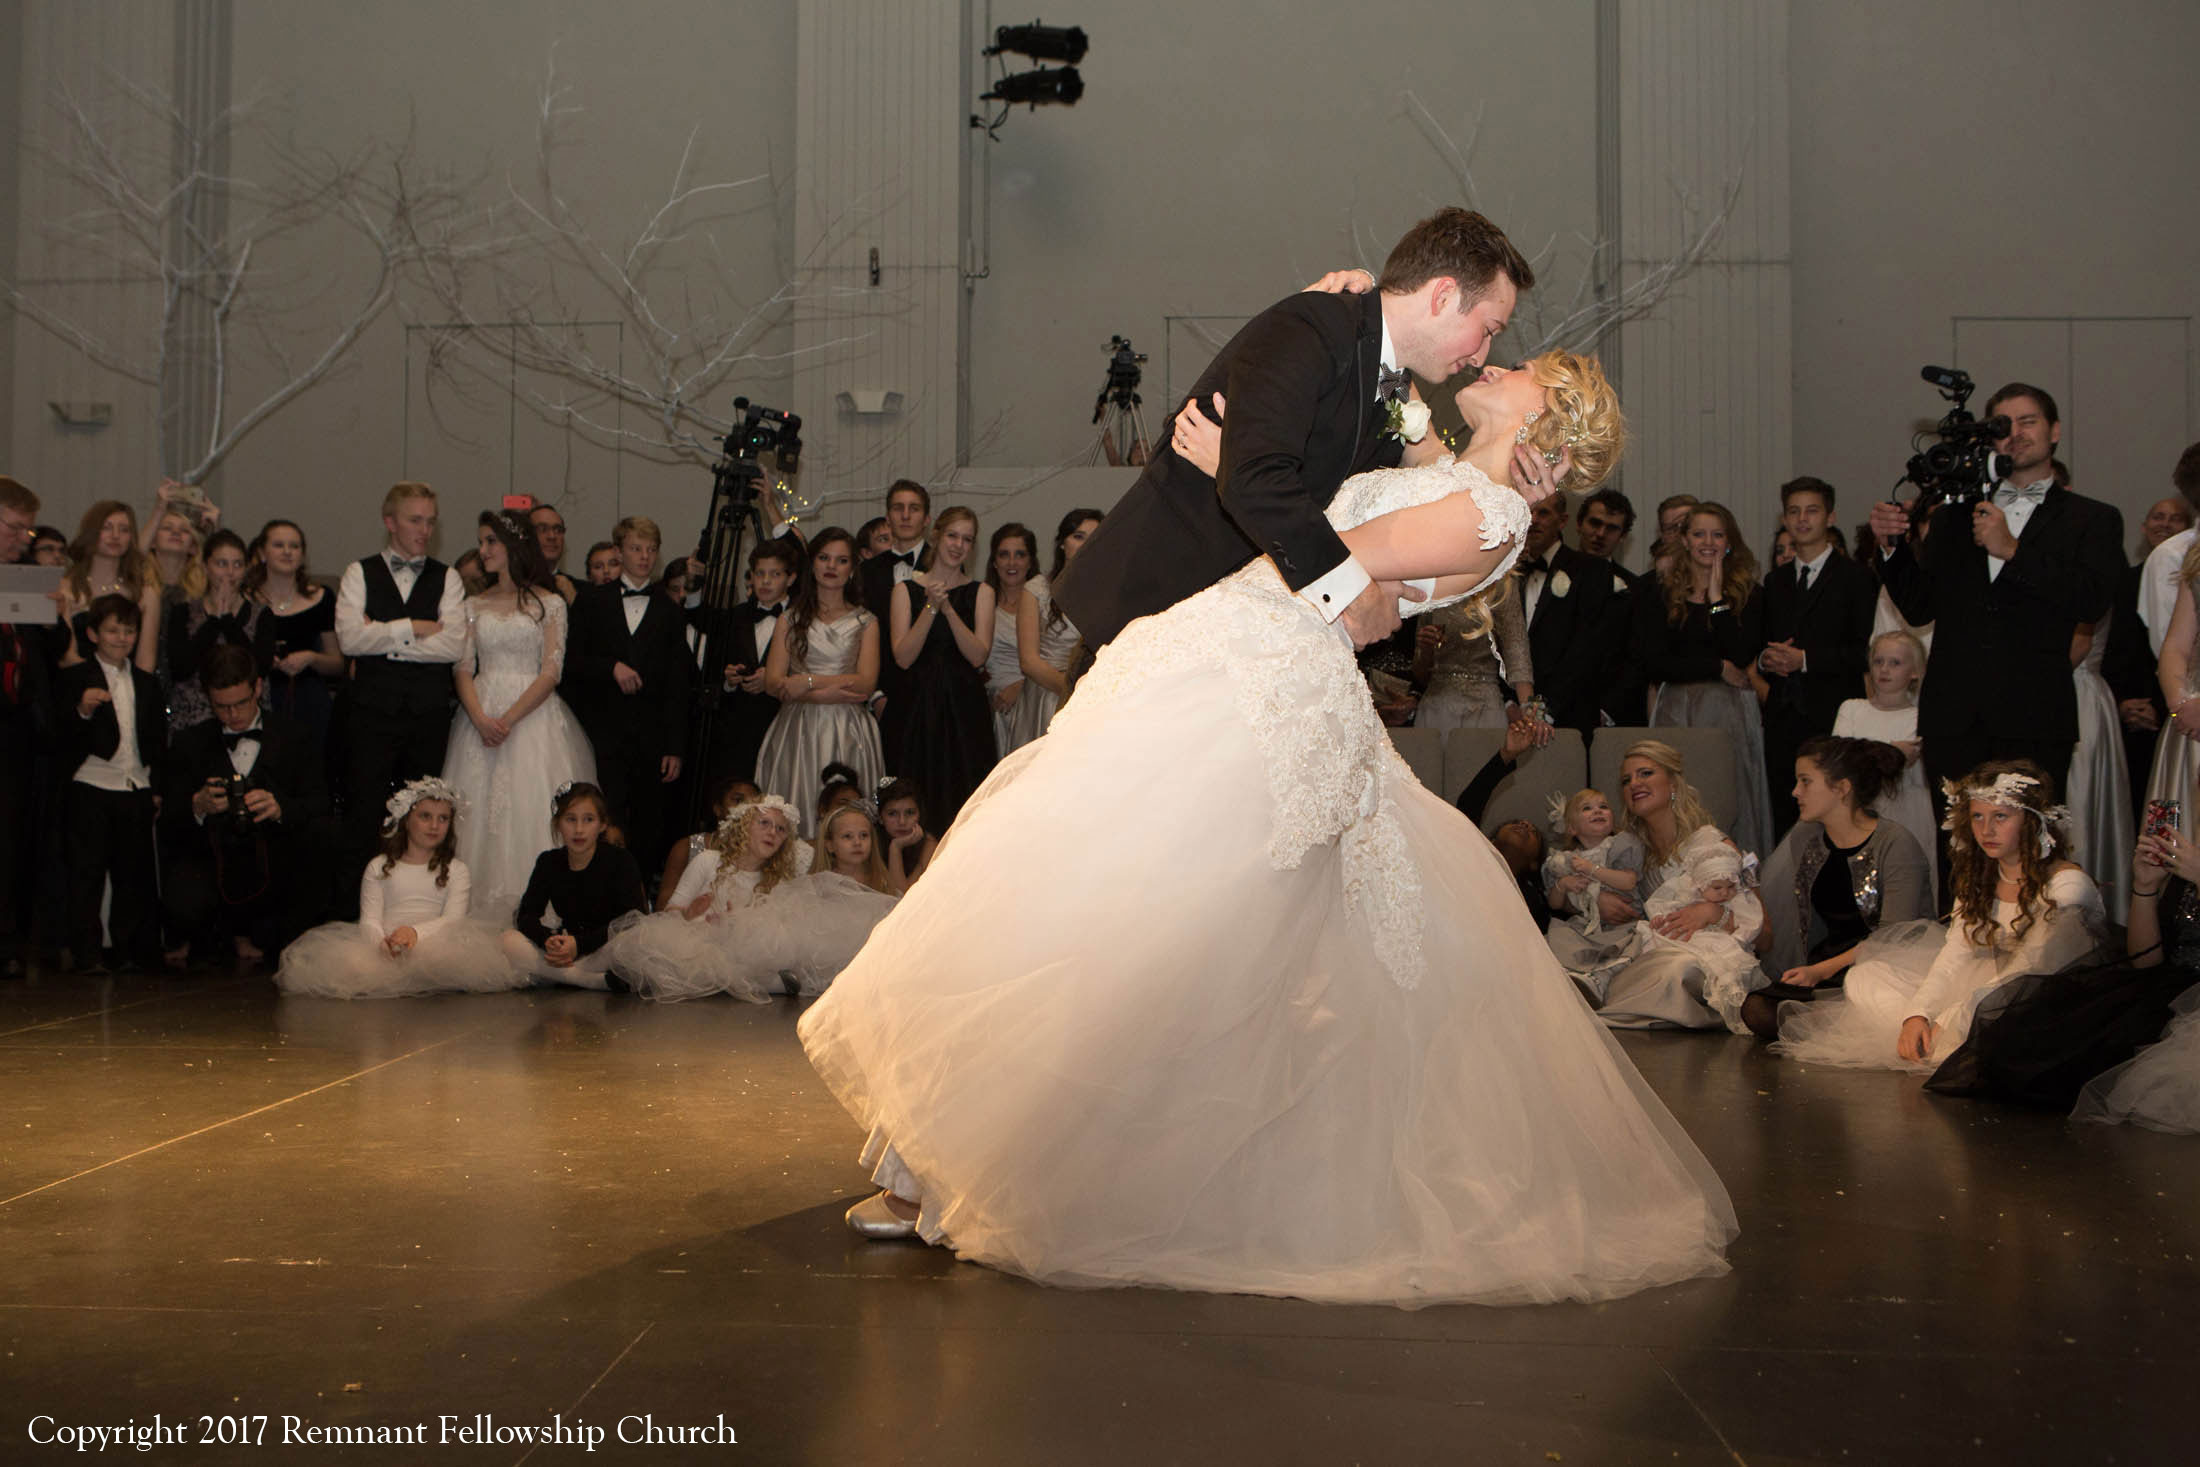 Remnant-Fellowship-Covenant-Wedding-Sindell-Voorhis-First-Dance-02